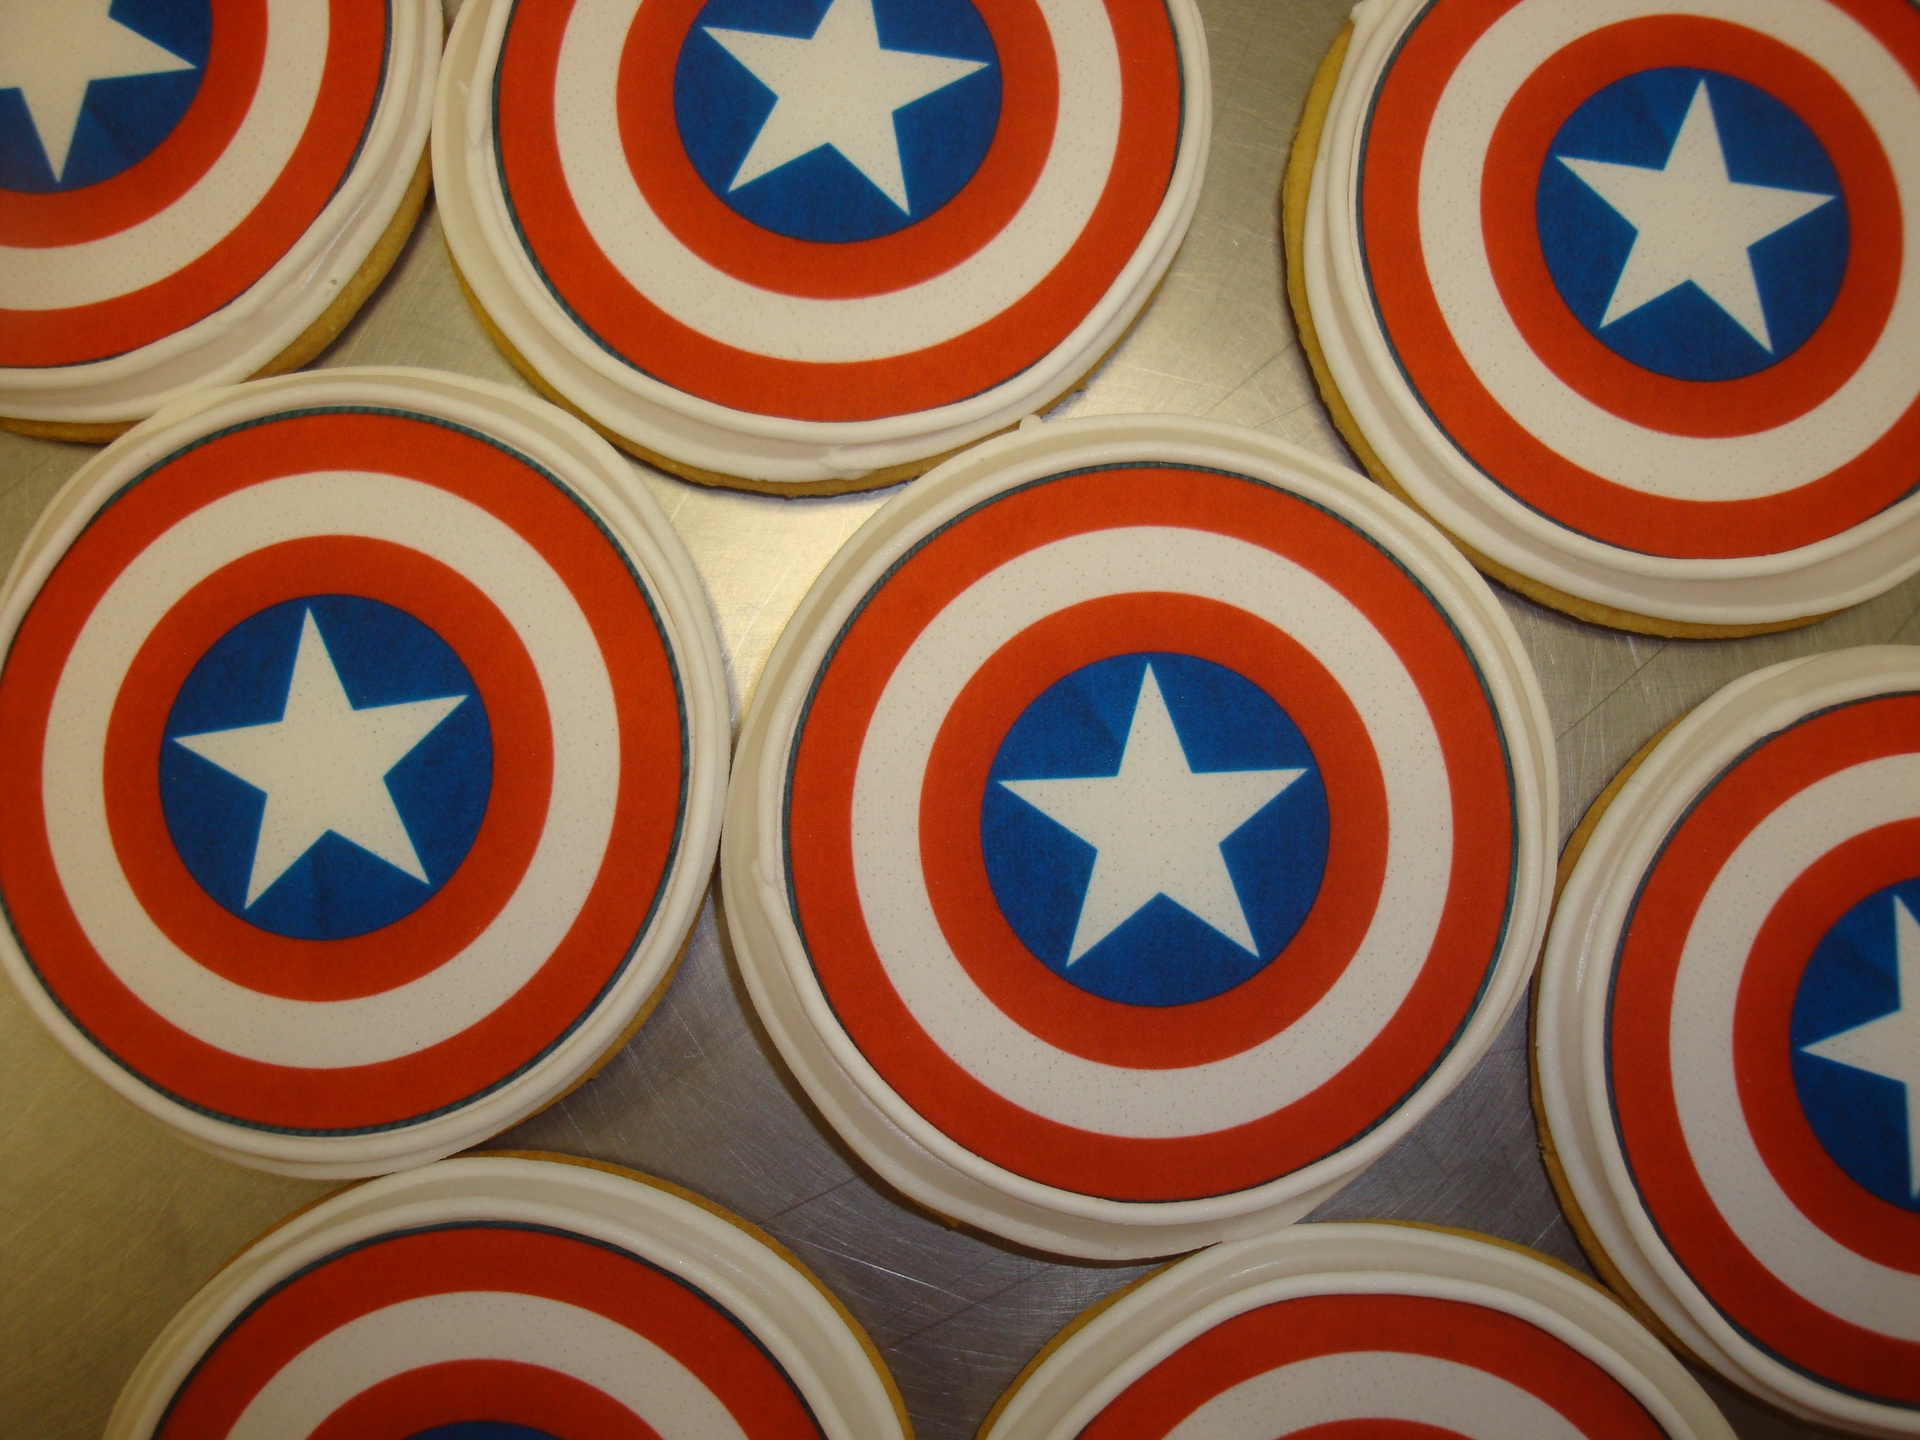 Captian America photo decal cookies $3 each